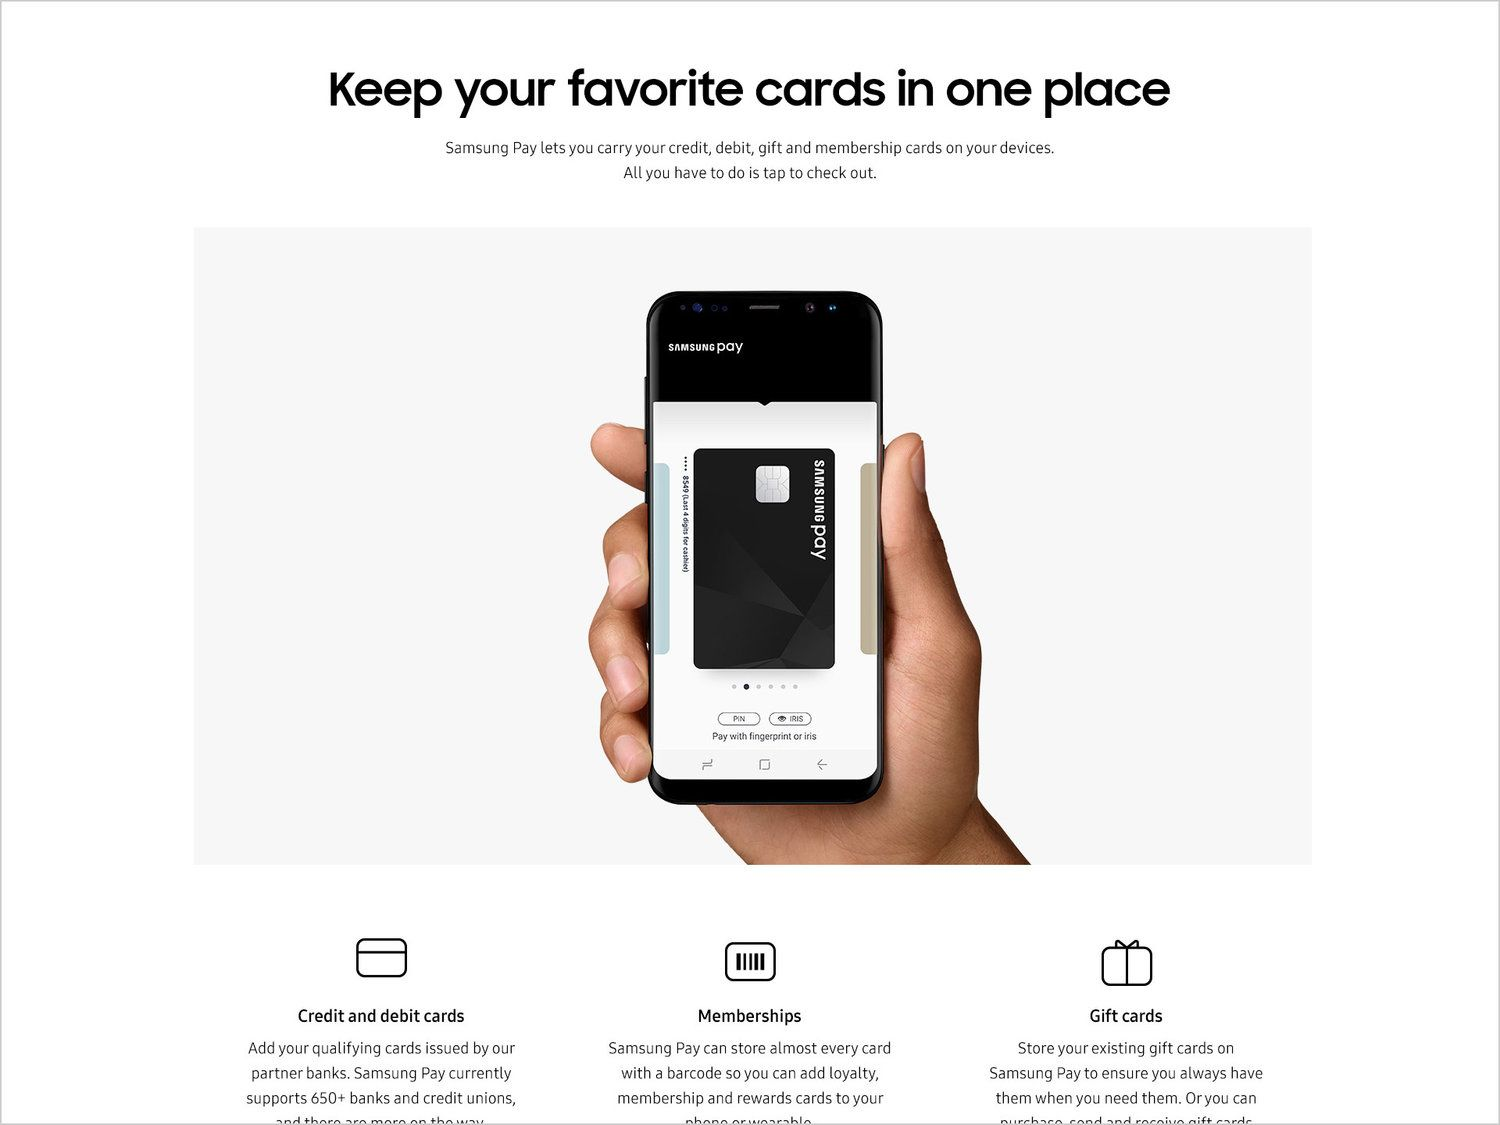 Samsung Galaxy S8 Web Pay 3 Jpg Samsung Pay Member Card Galaxy S8